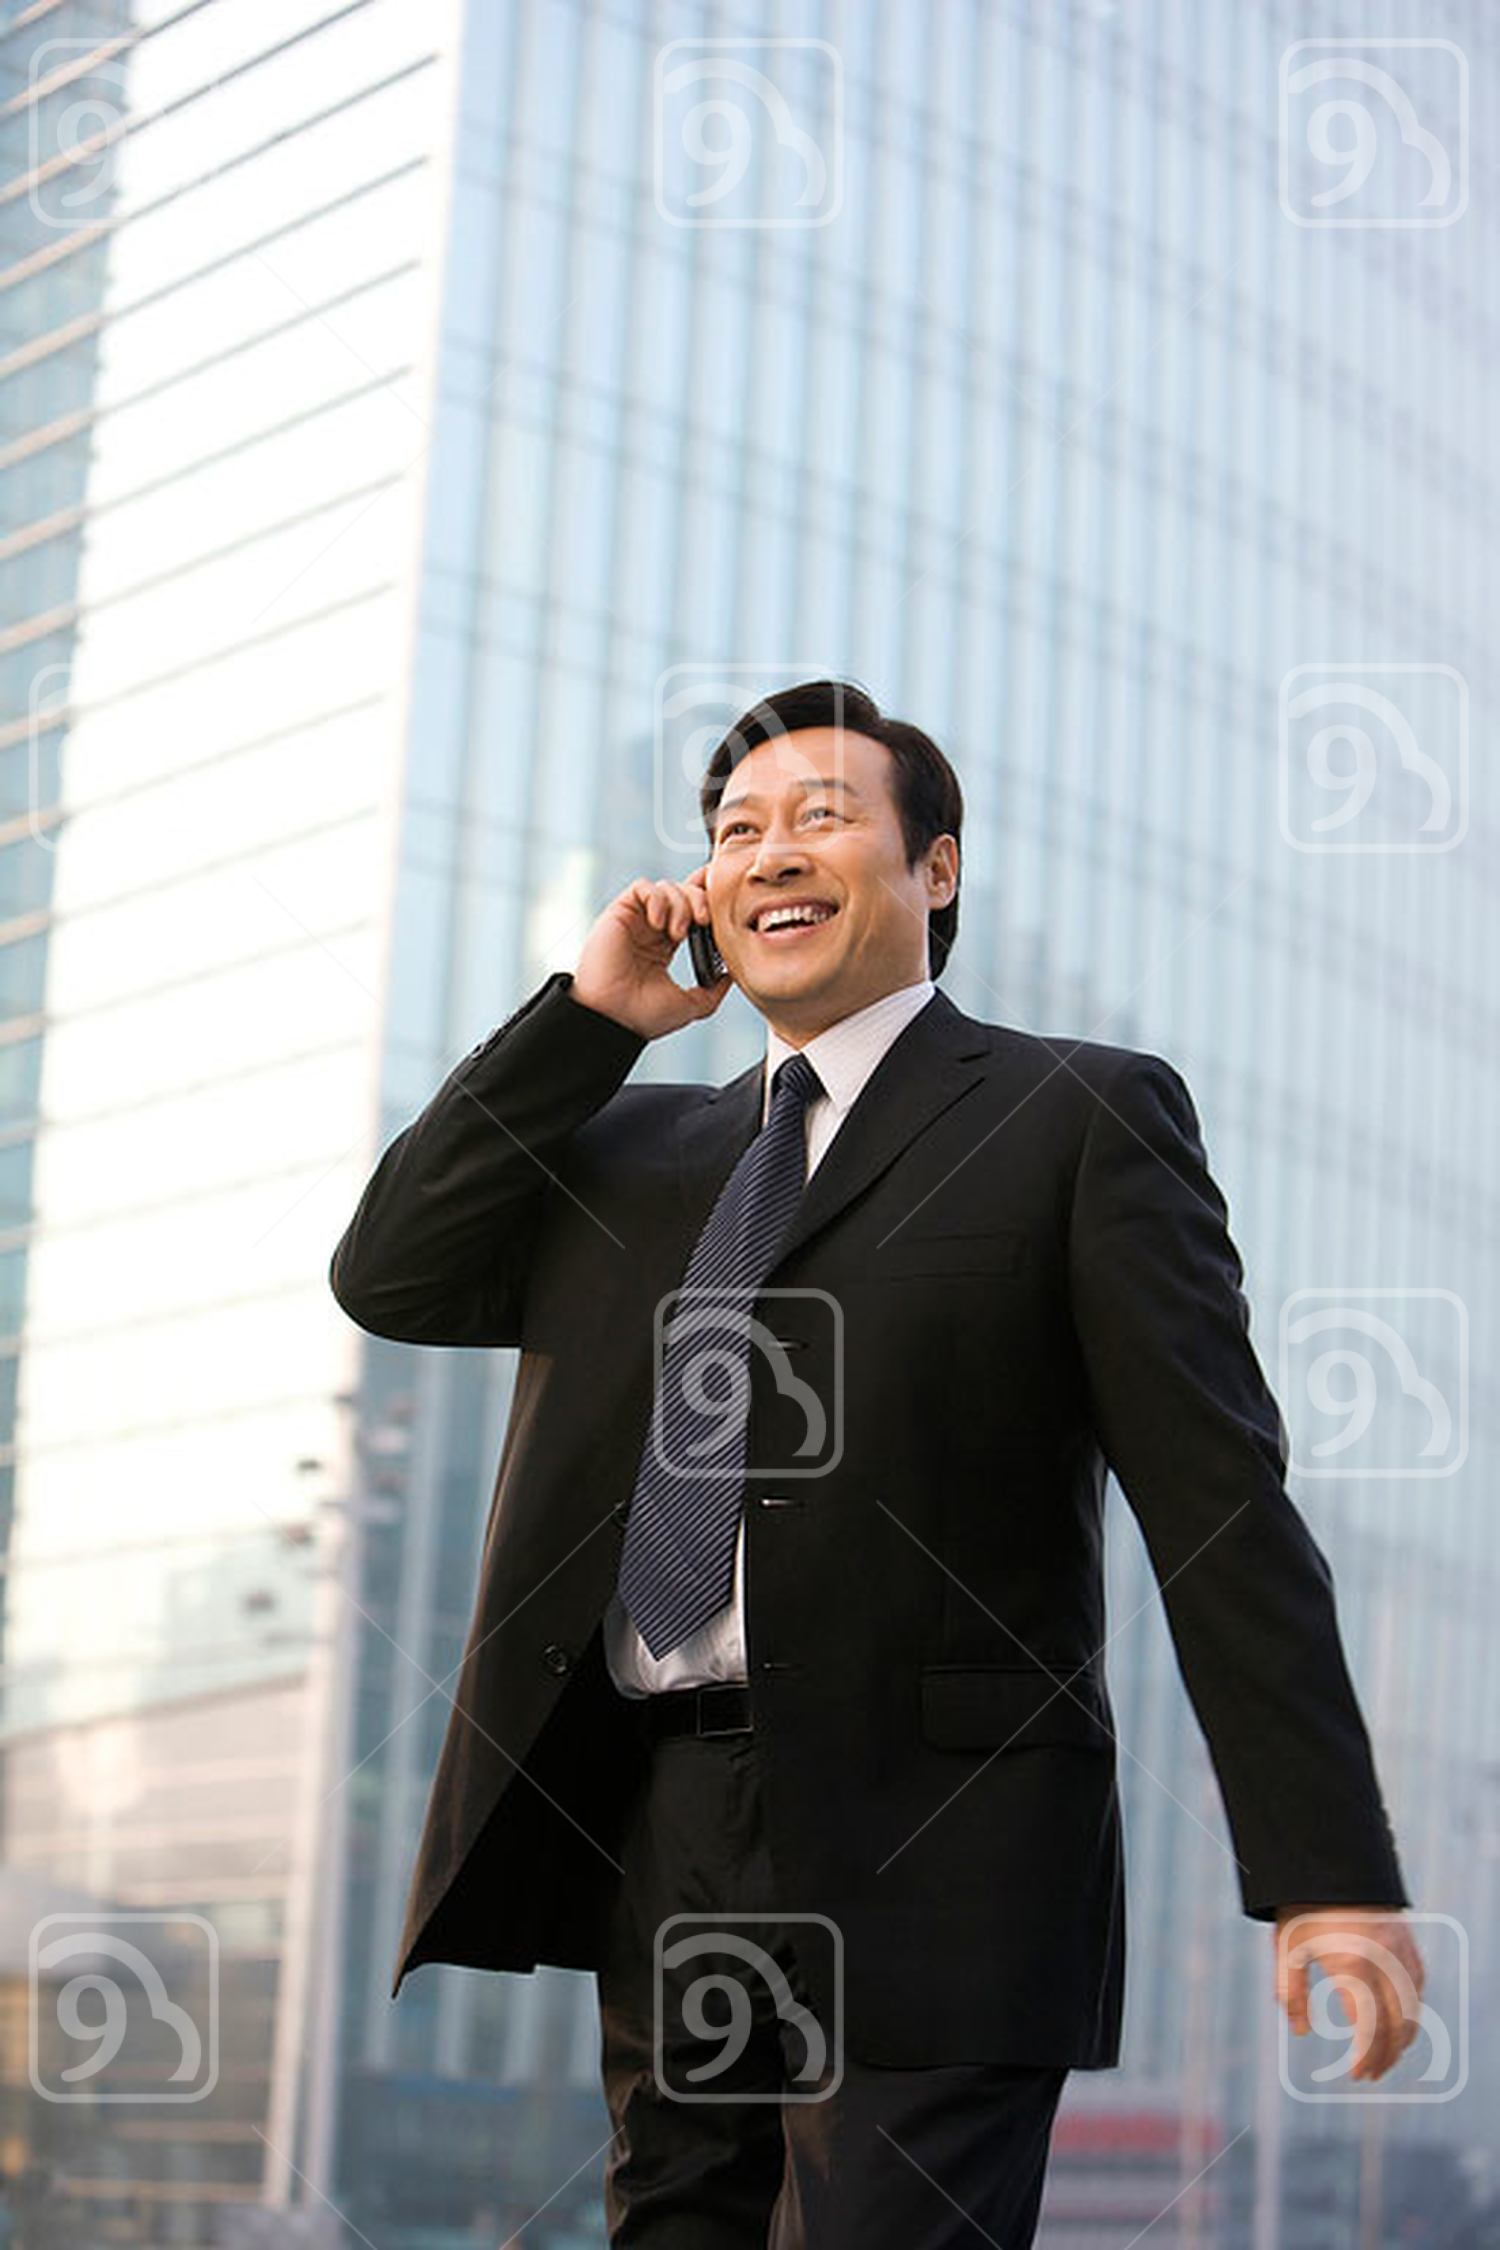 Chinese business Leader Staying Connected